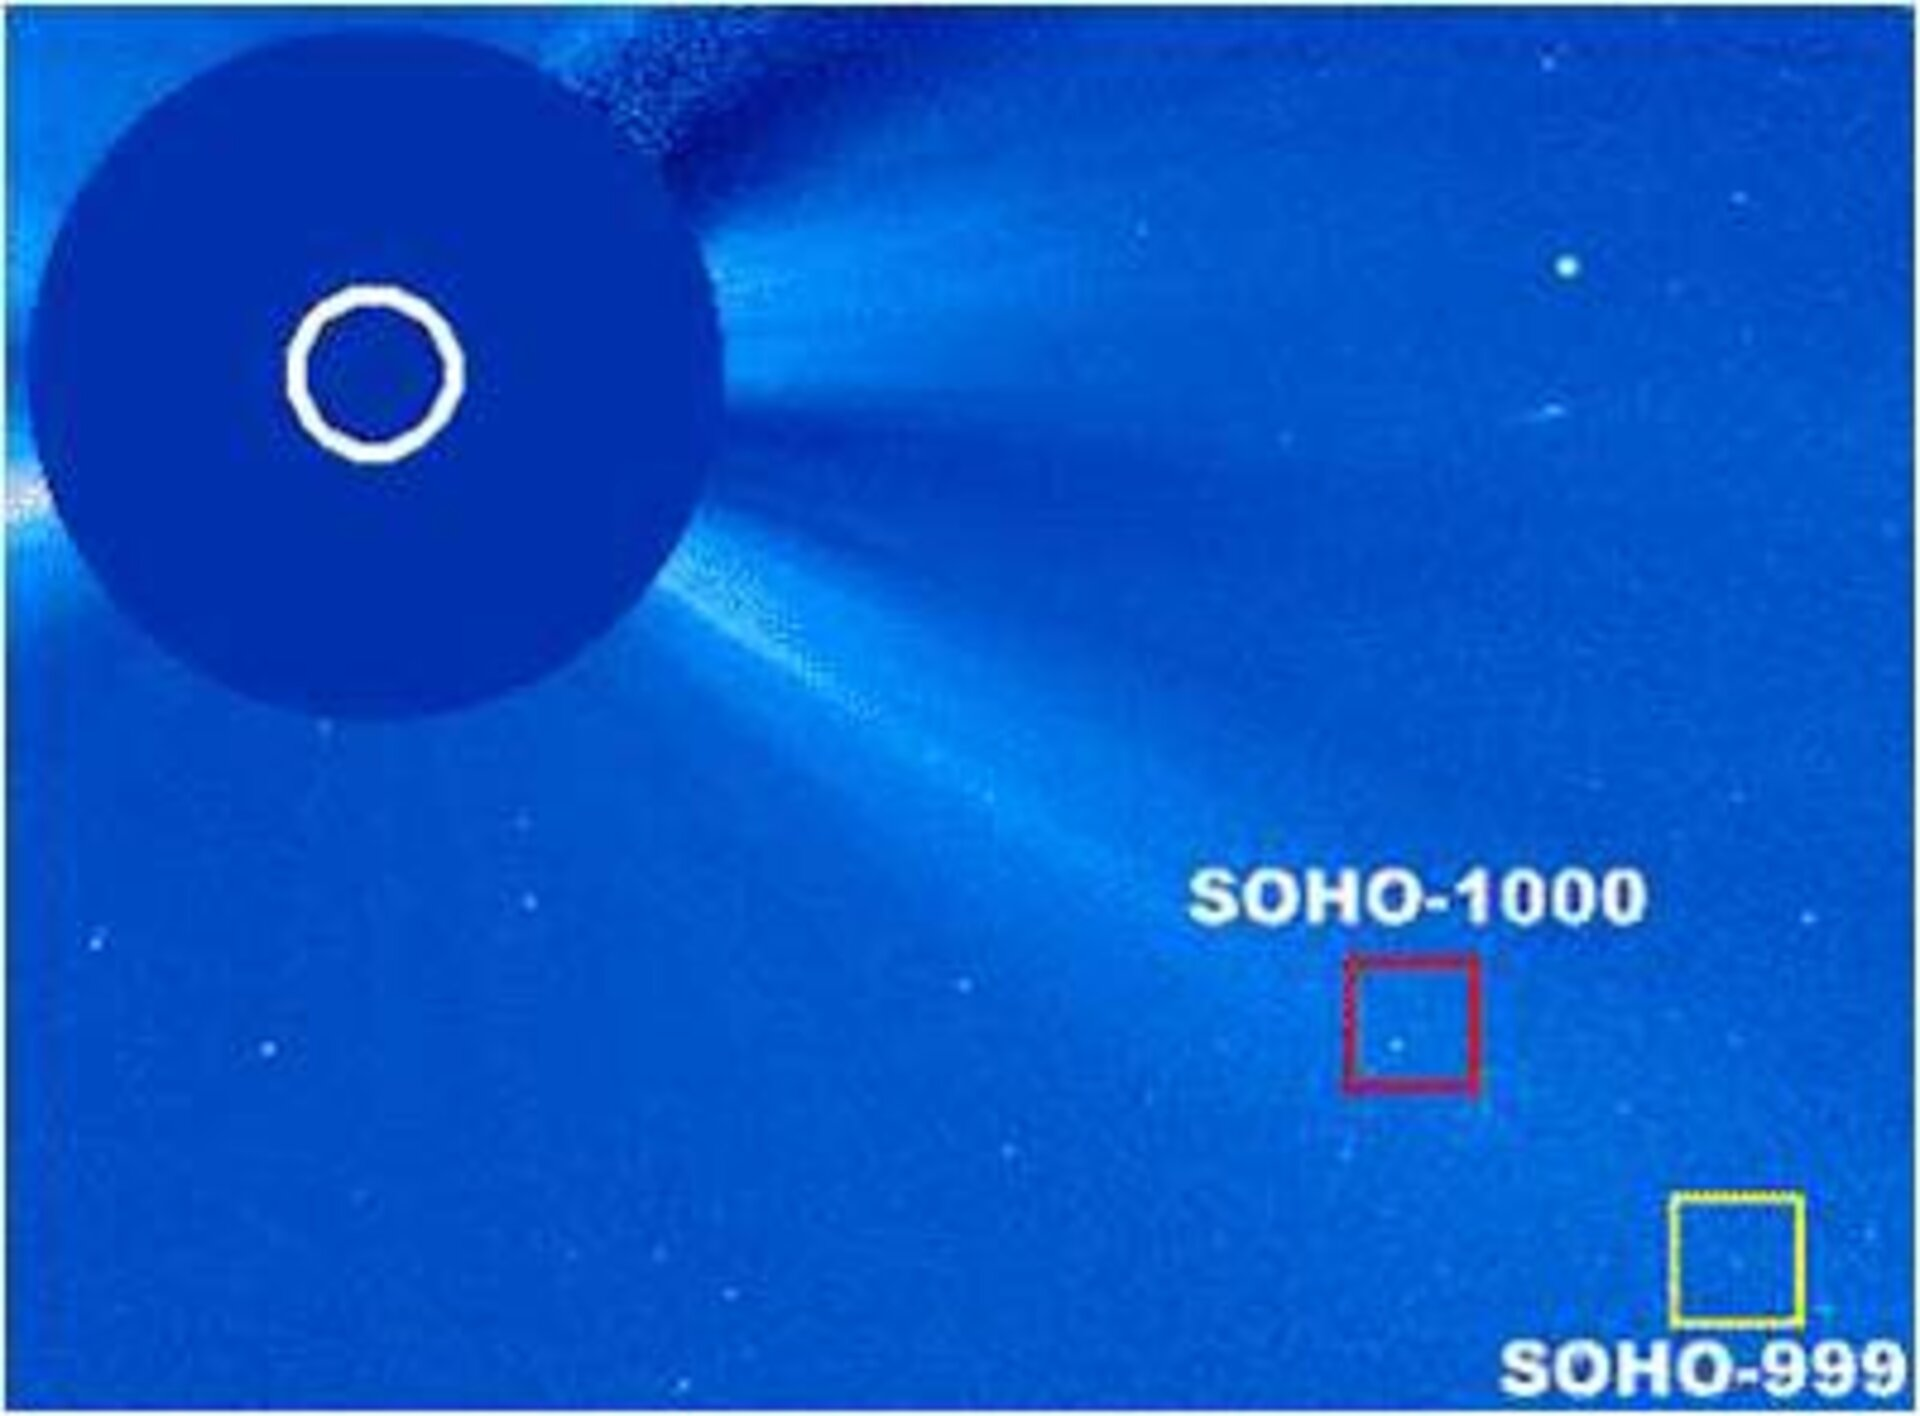 999th and 1000th comets identified in SOHO images